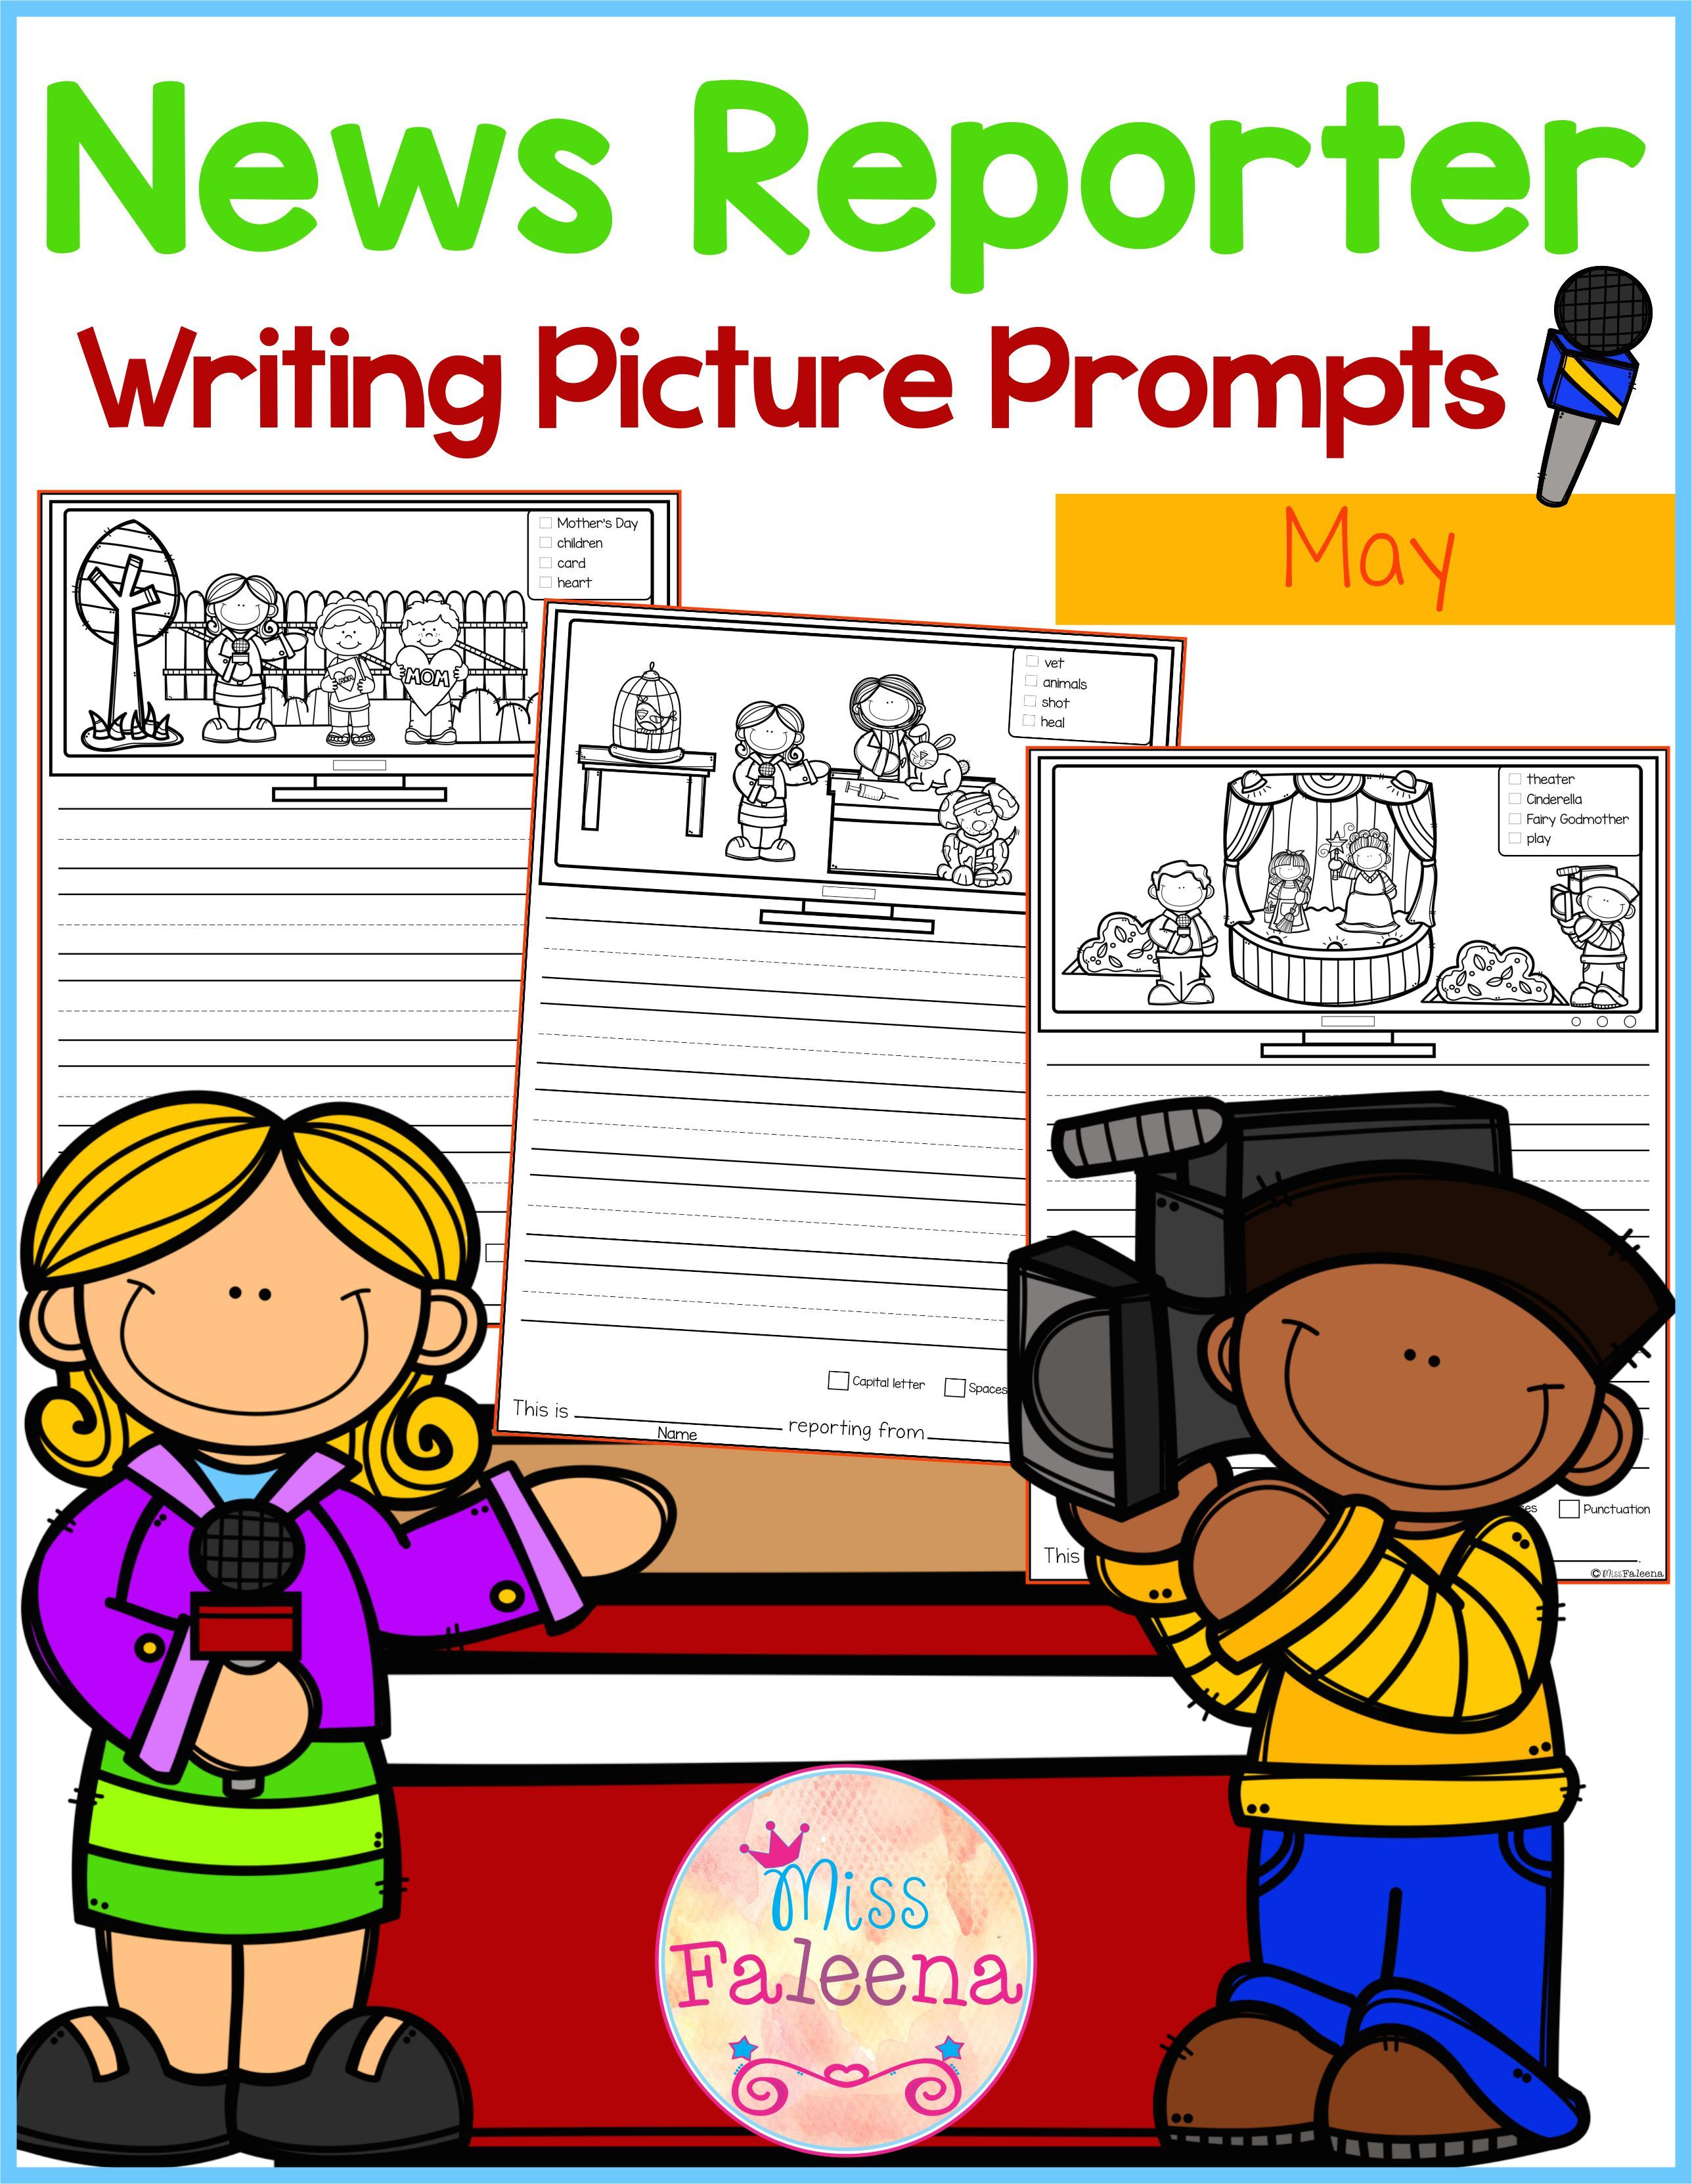 May Writing Picture Prompts